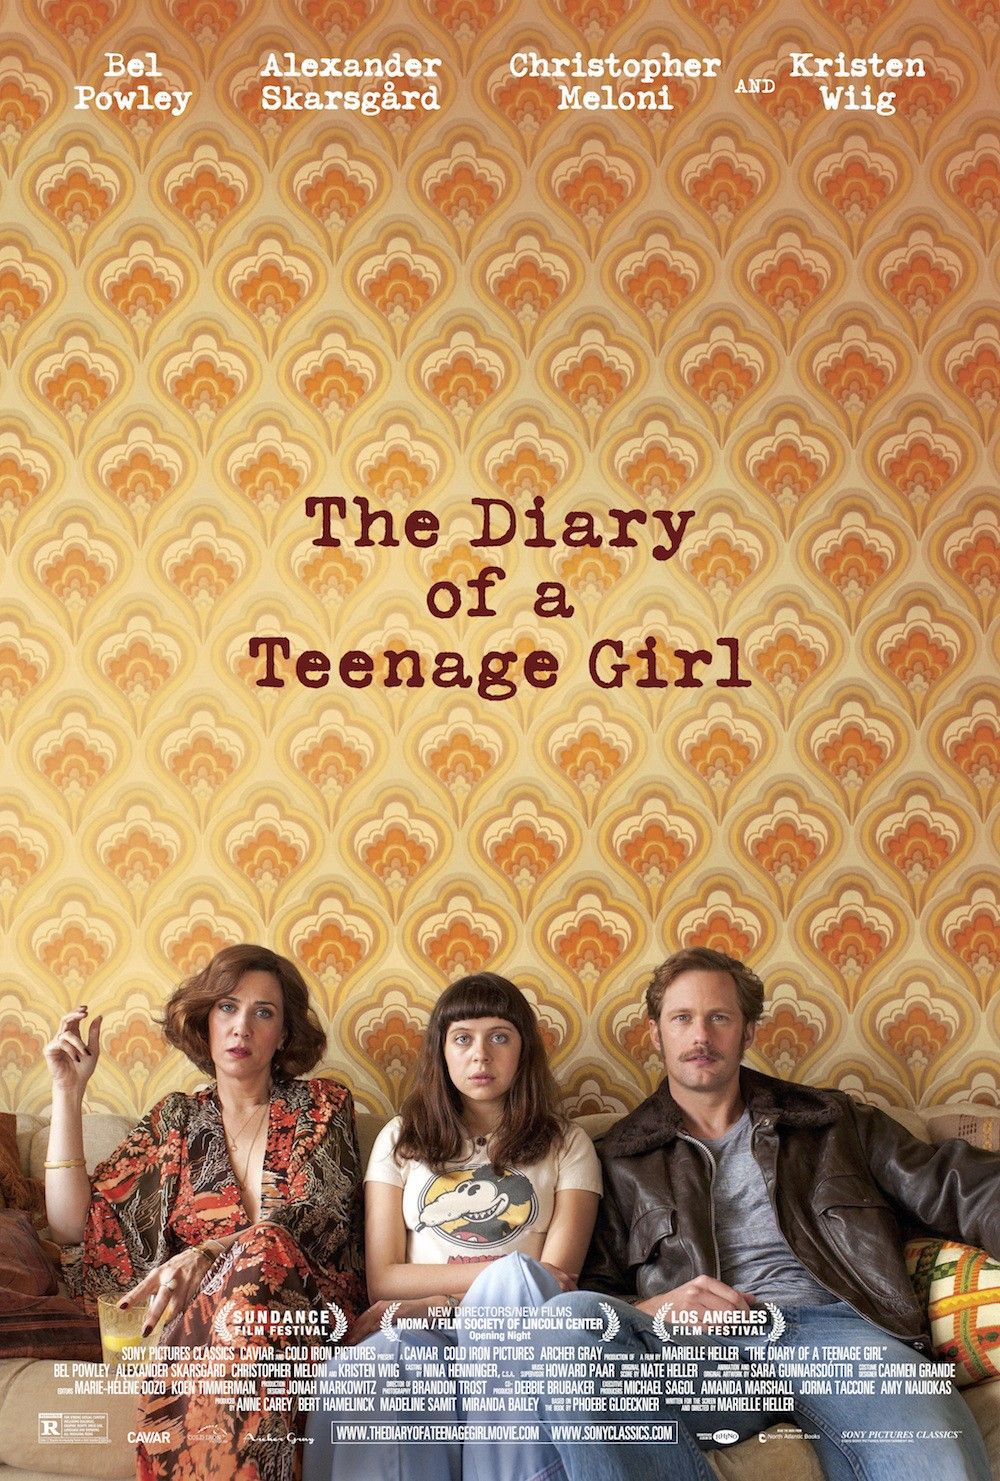 Marielle Heller And Bel Powley Discuss The Diary Of A Teenage